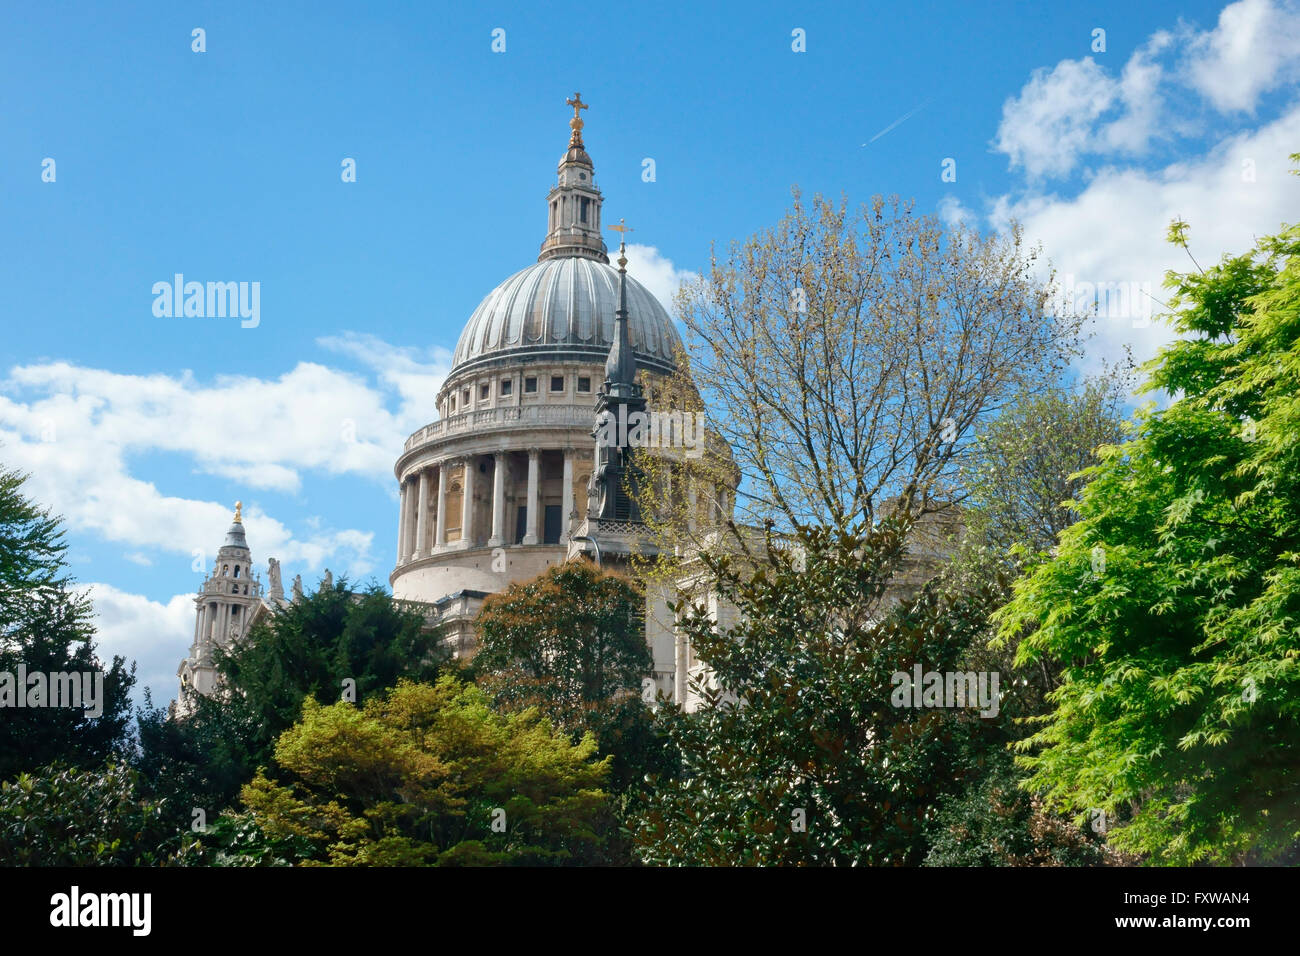 St Paul's Cathedral, in the City of London, England, Great Britain, United Kingdom, GB, UK - Stock Image